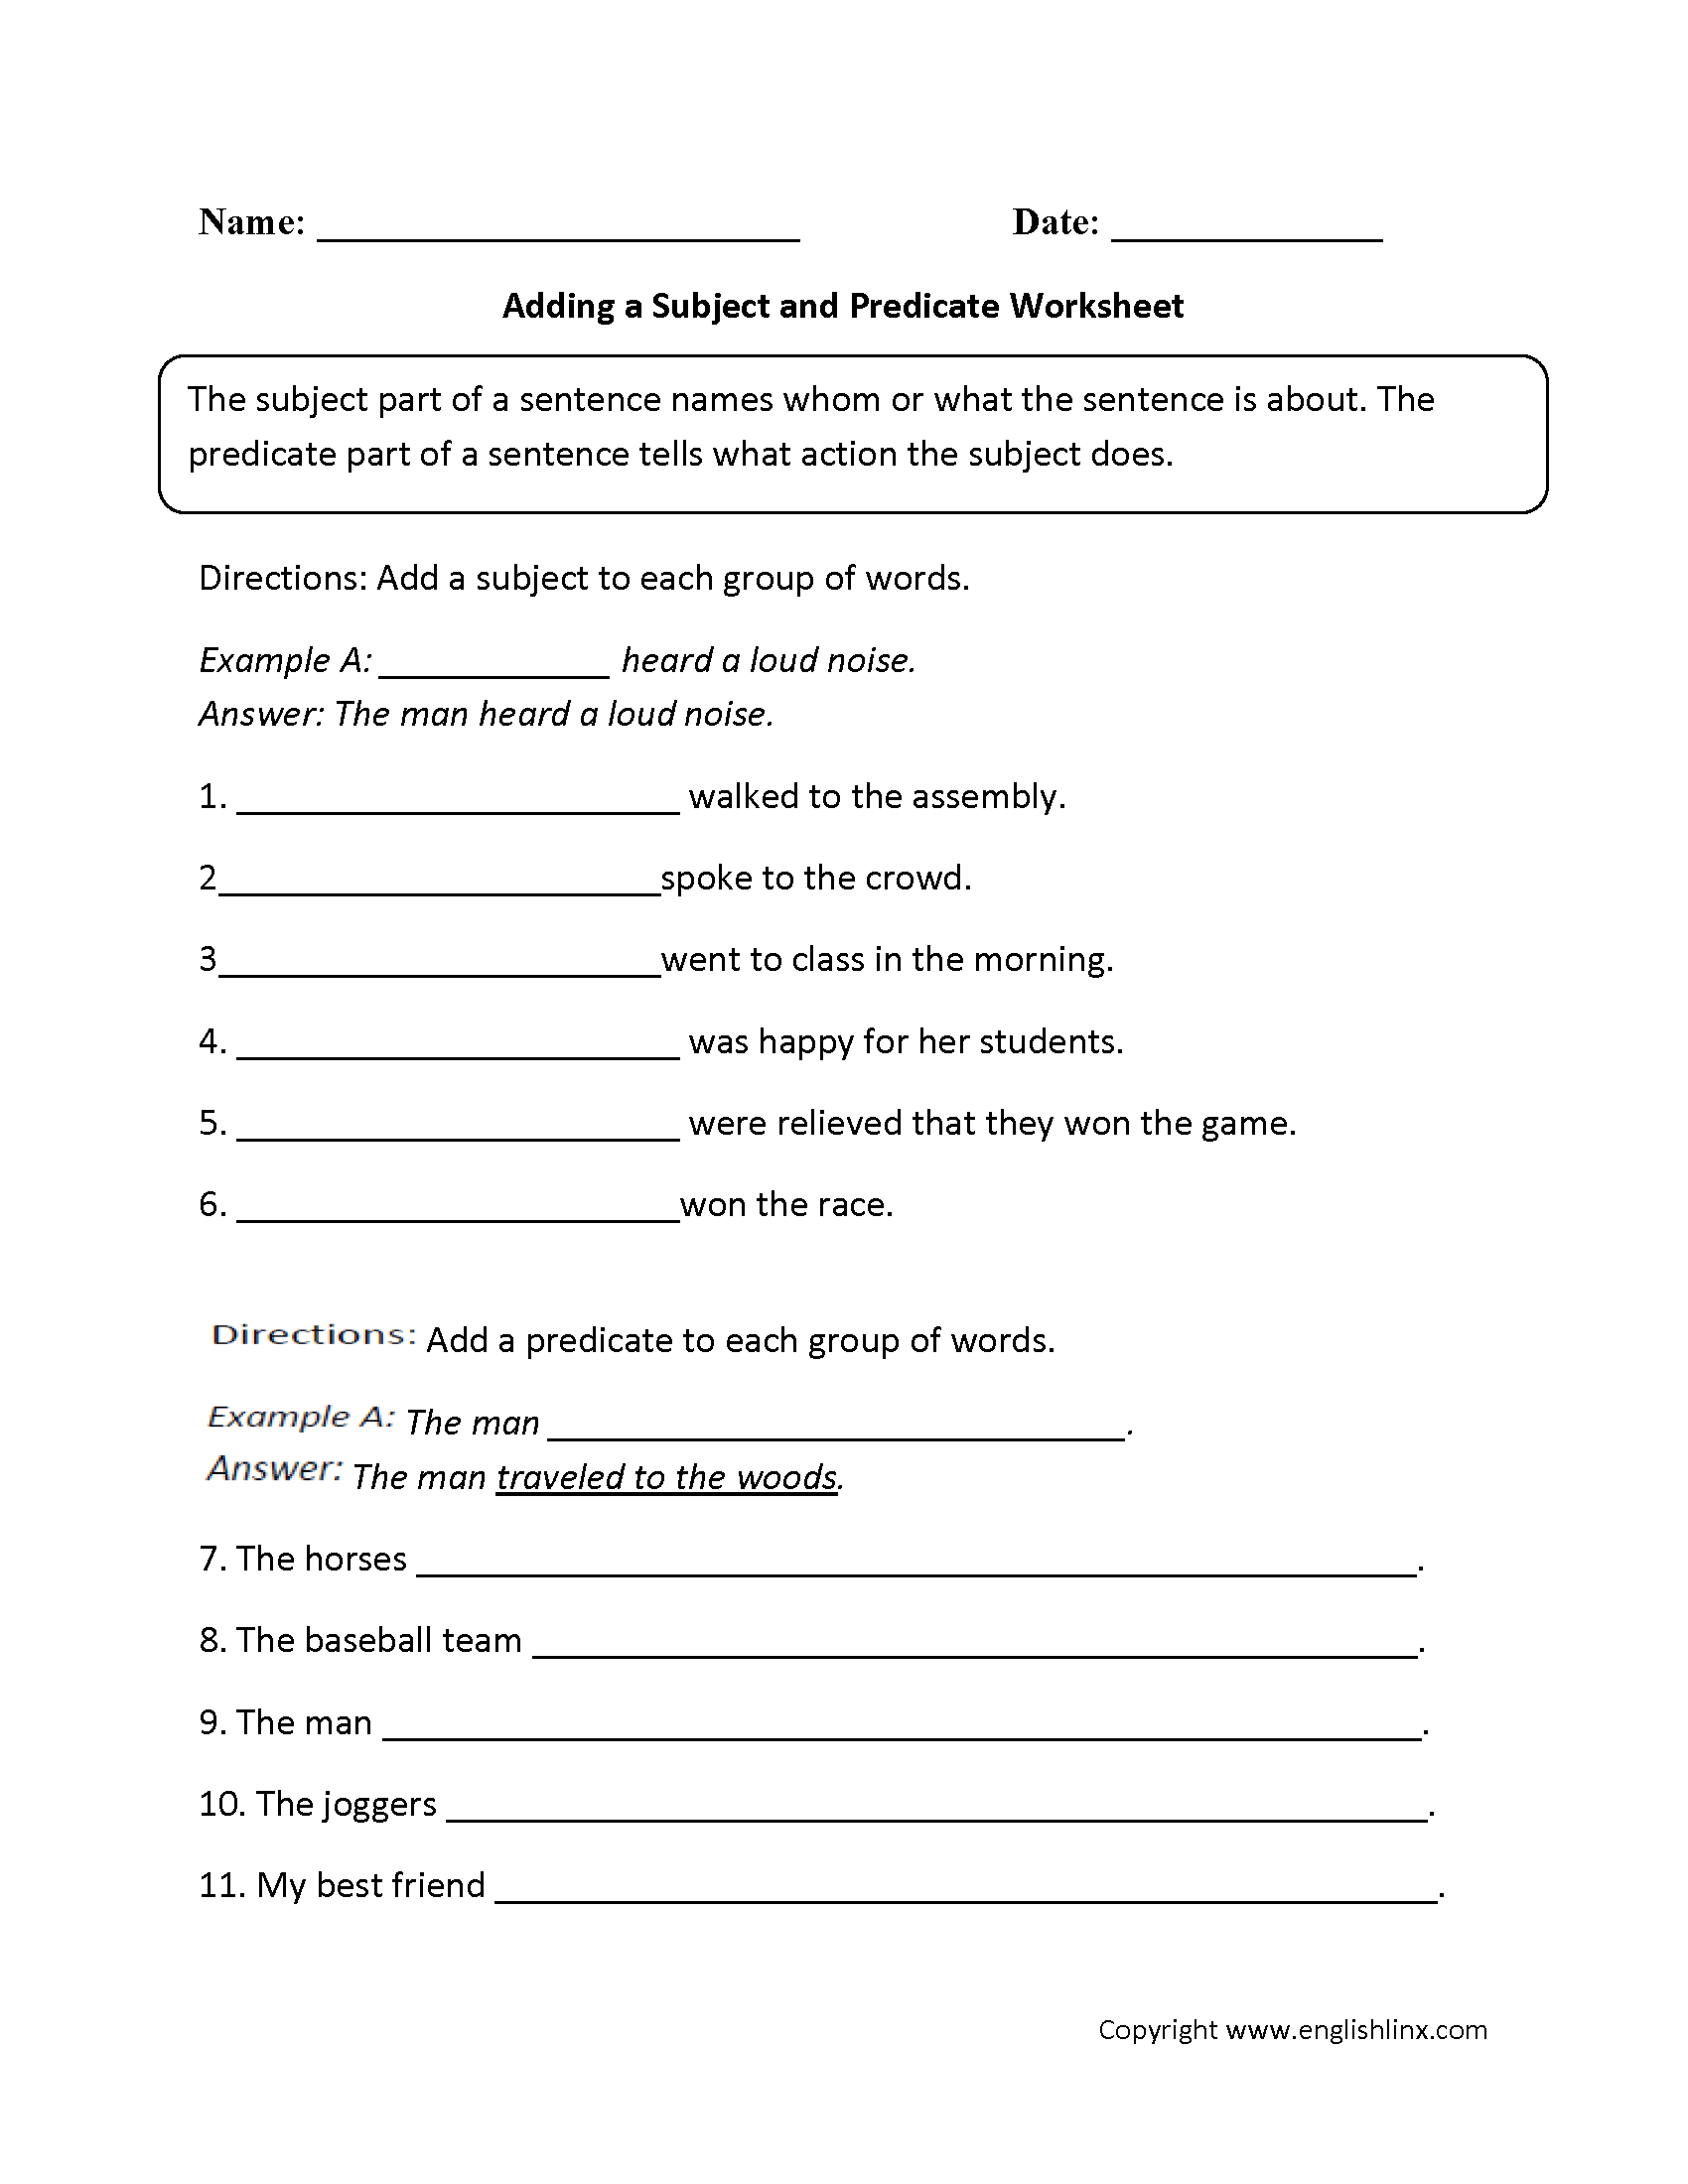 worksheet Compound Subjects And Predicates Worksheets englishlinx com subject and predicate worksheets adding a subejct worksheet